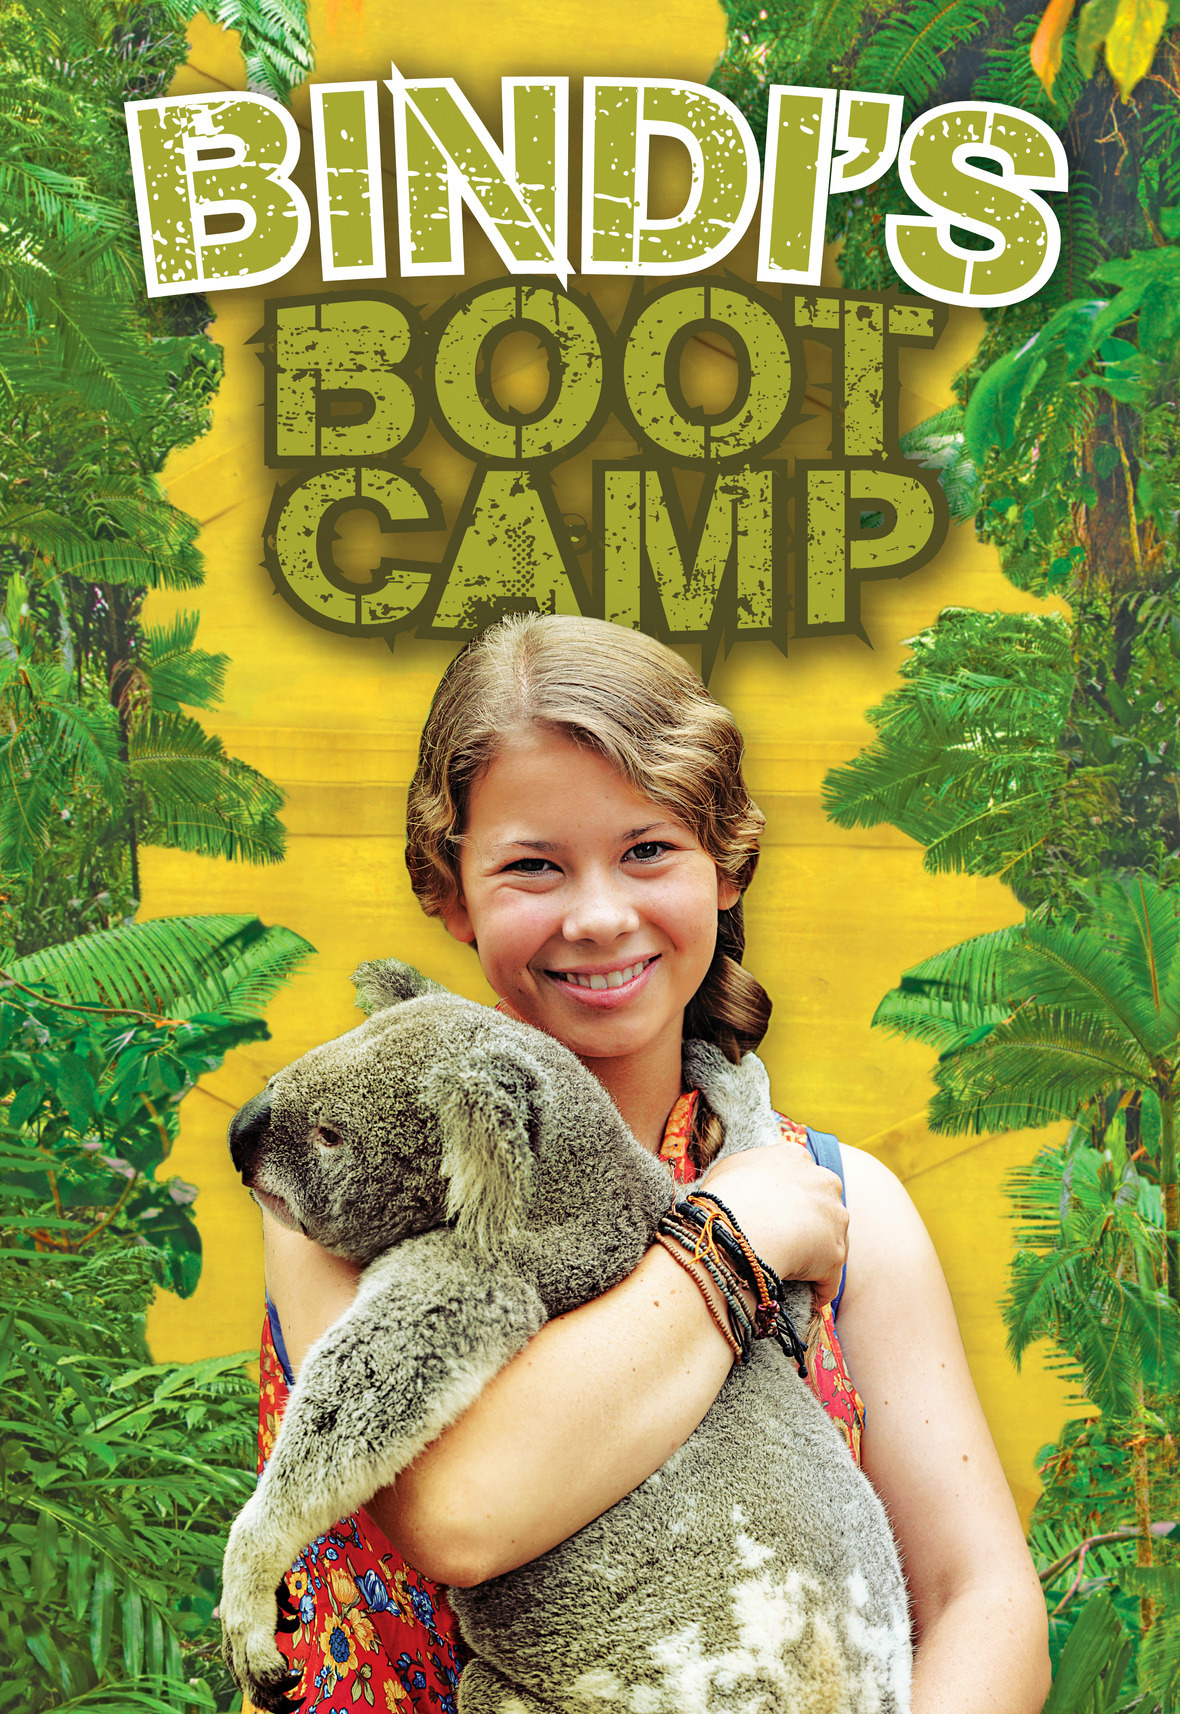 Bindi's Boot Camp